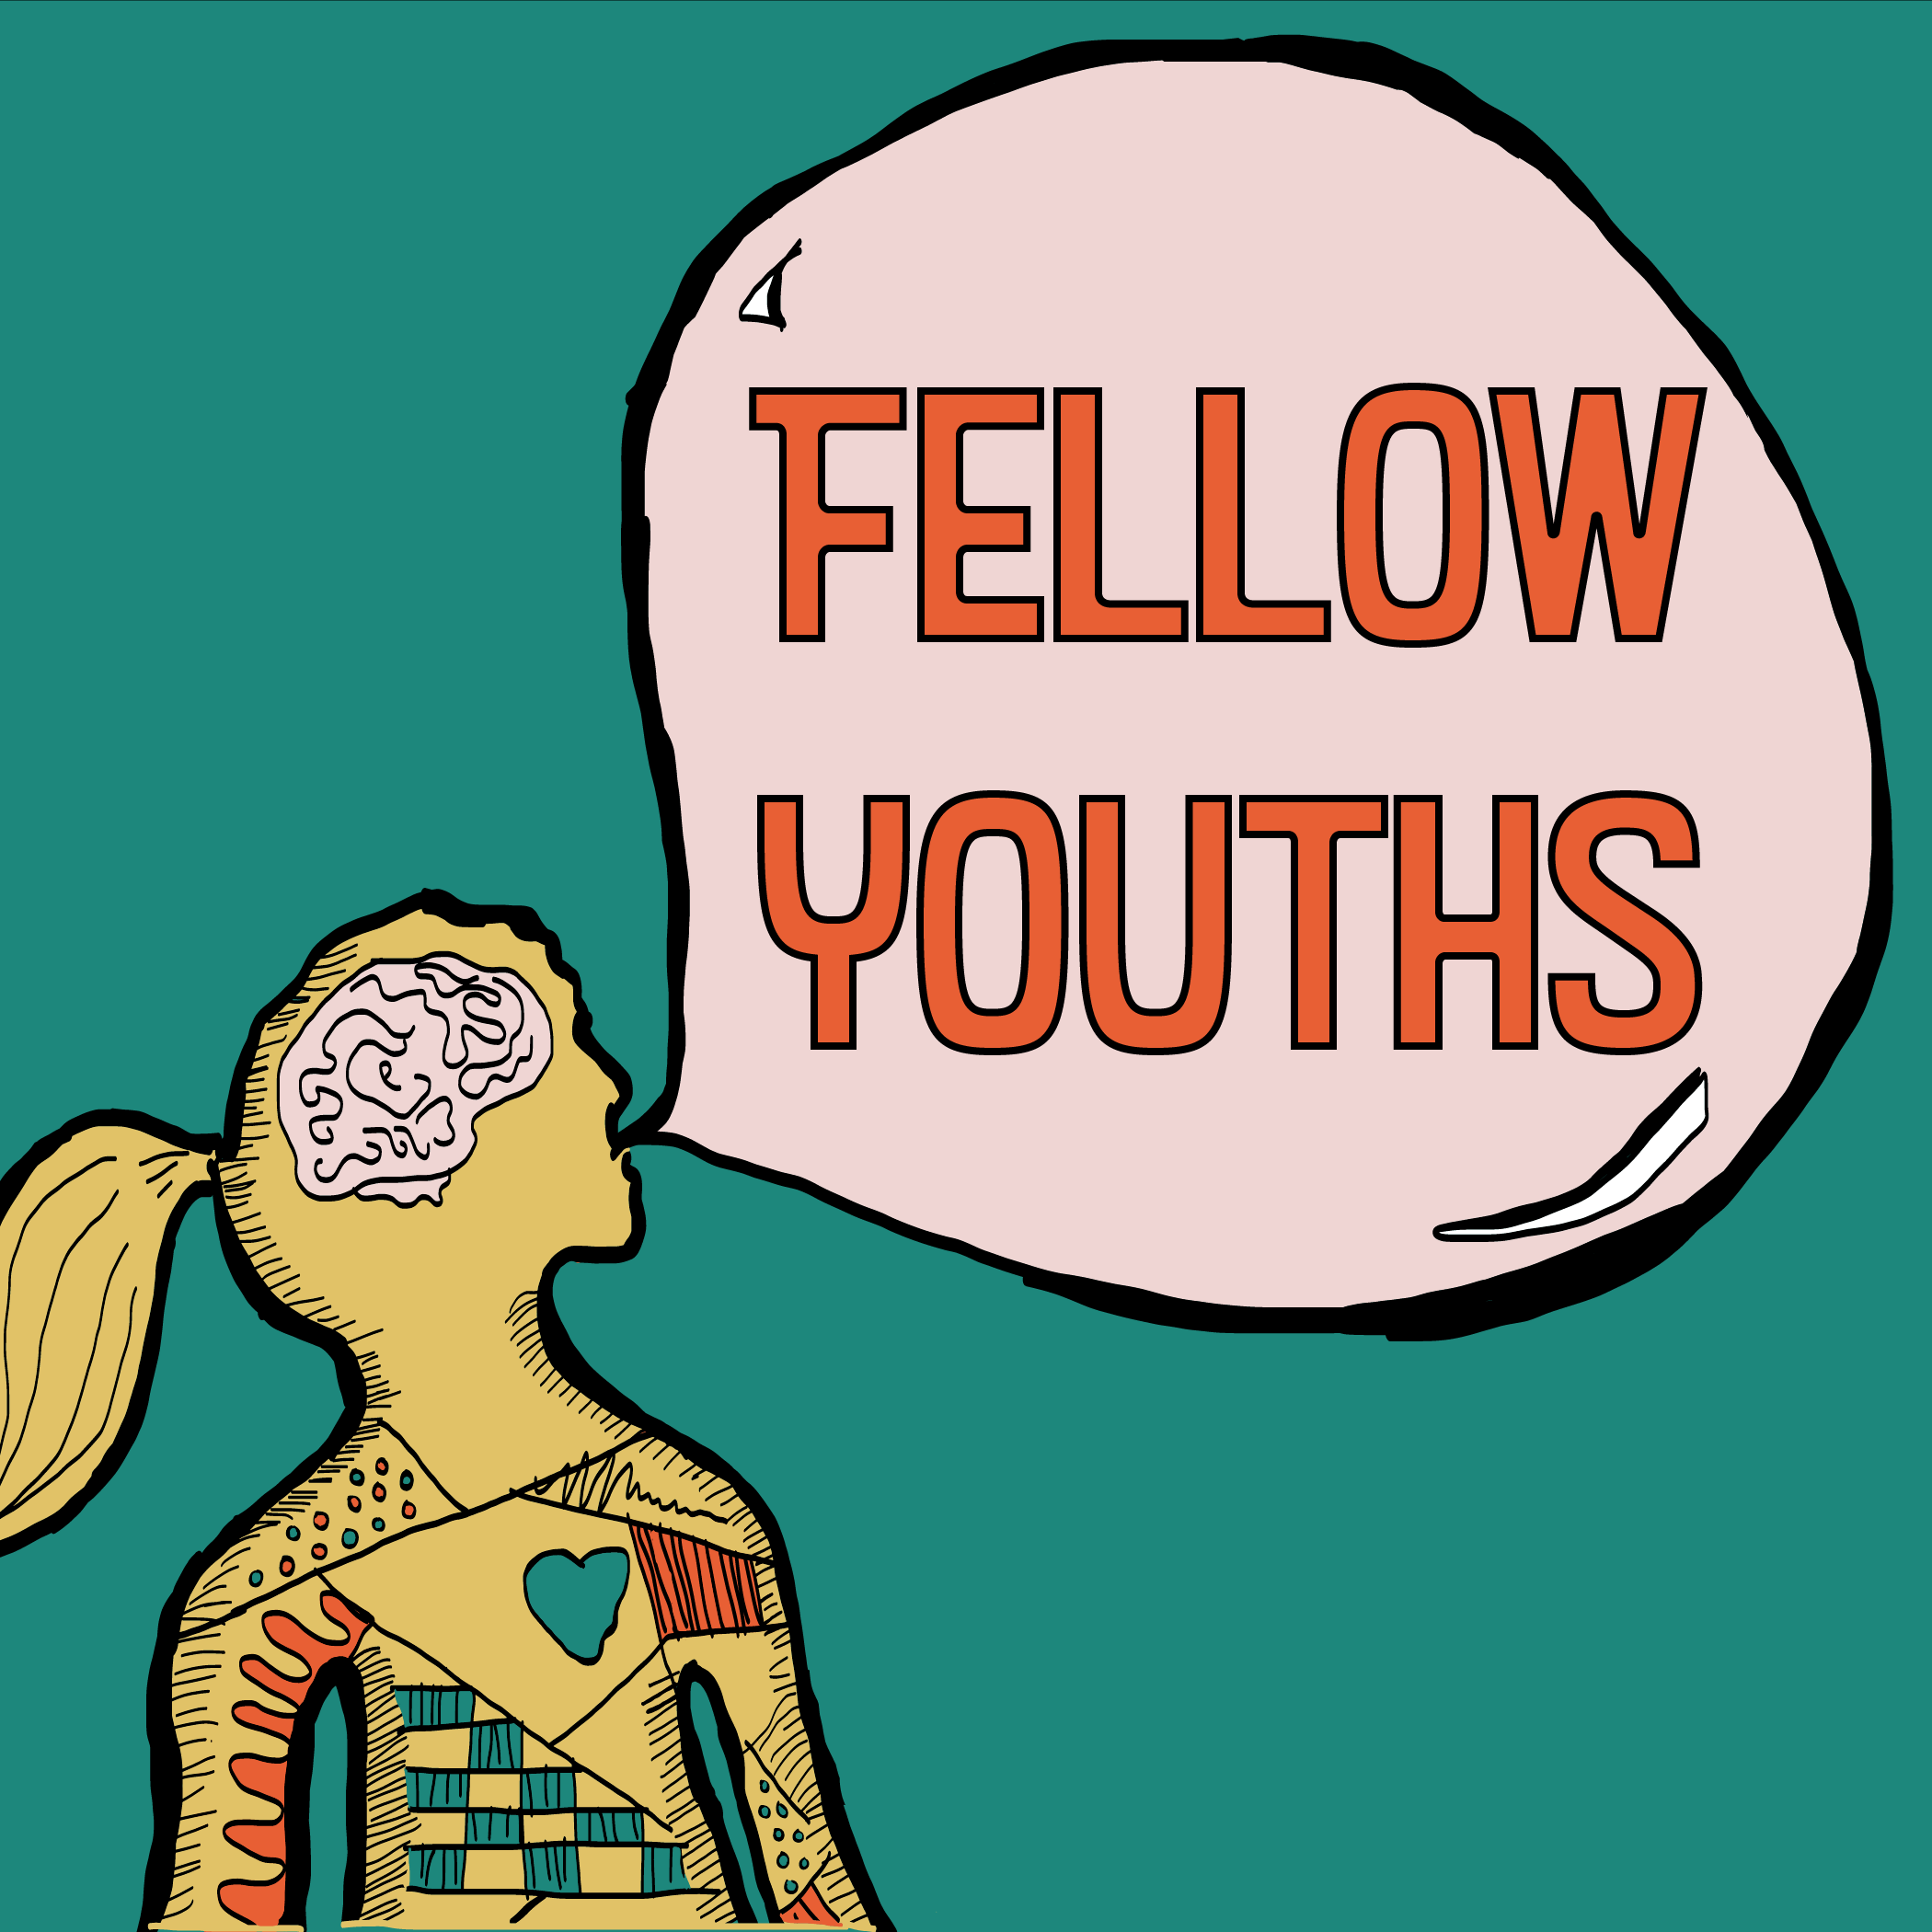 Promotional image for Fellow Youths: You've Got Male podcast